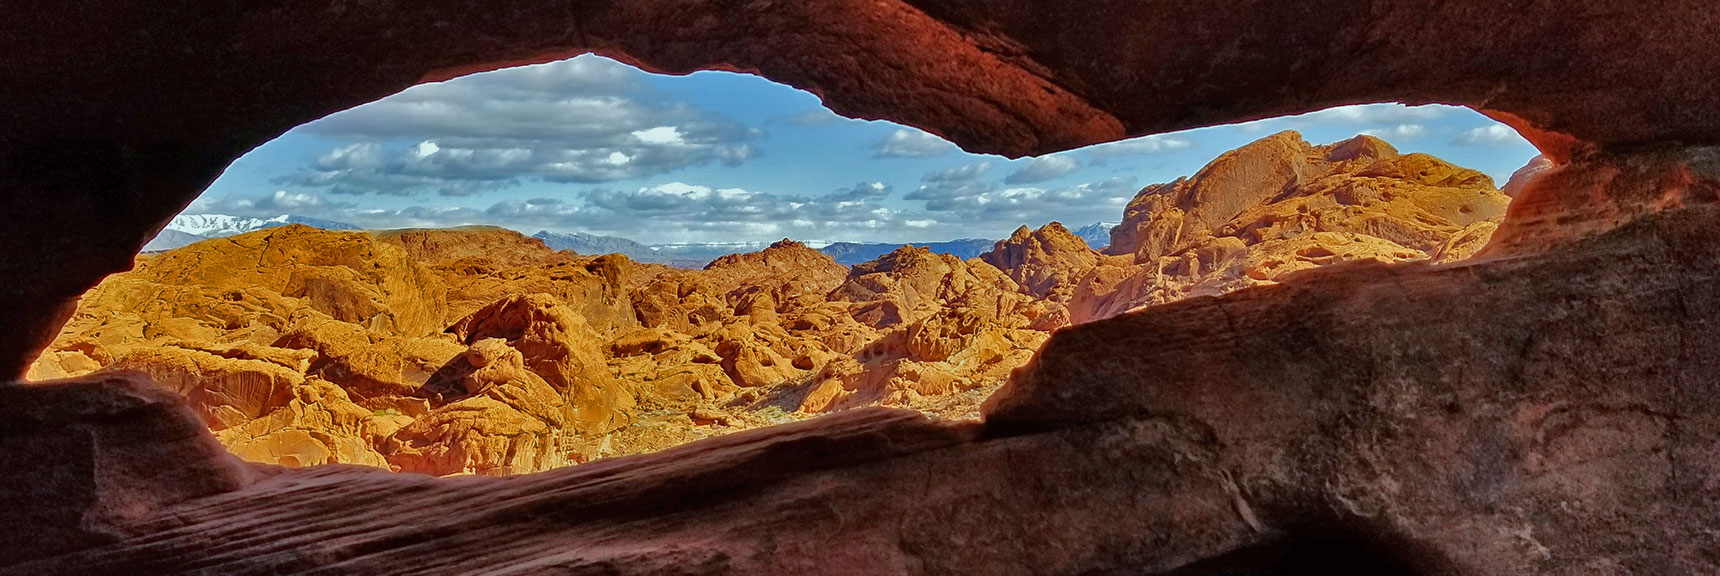 Rock Window View Beyond Mouse's Tank Trail in Valley of Fire State Park, Nevada